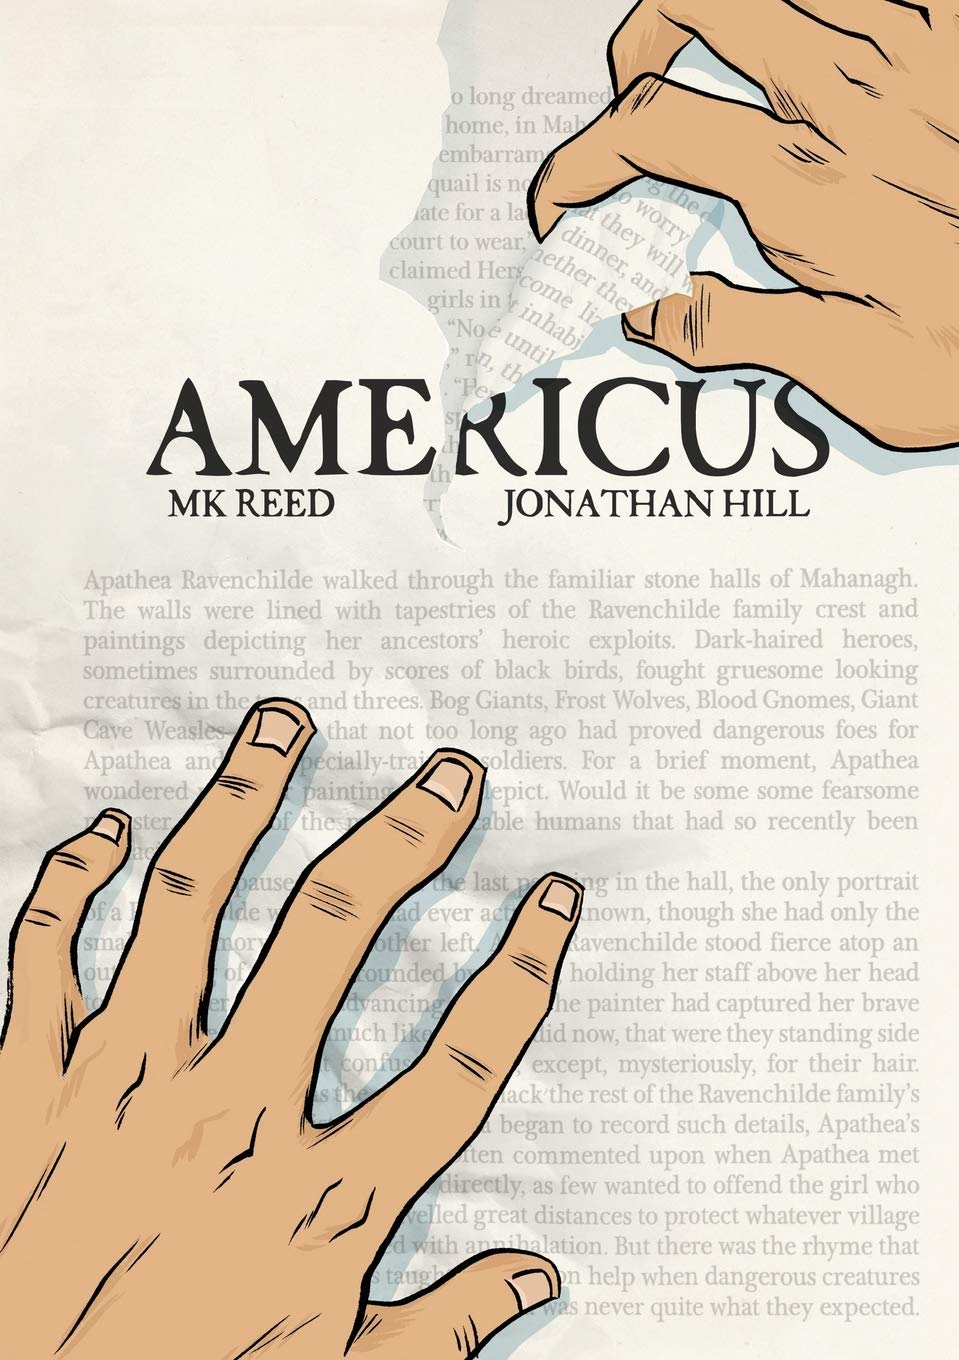 Amazon.com: Americus (9781596436015): Reed, MK, Hill, Jonathan: Books